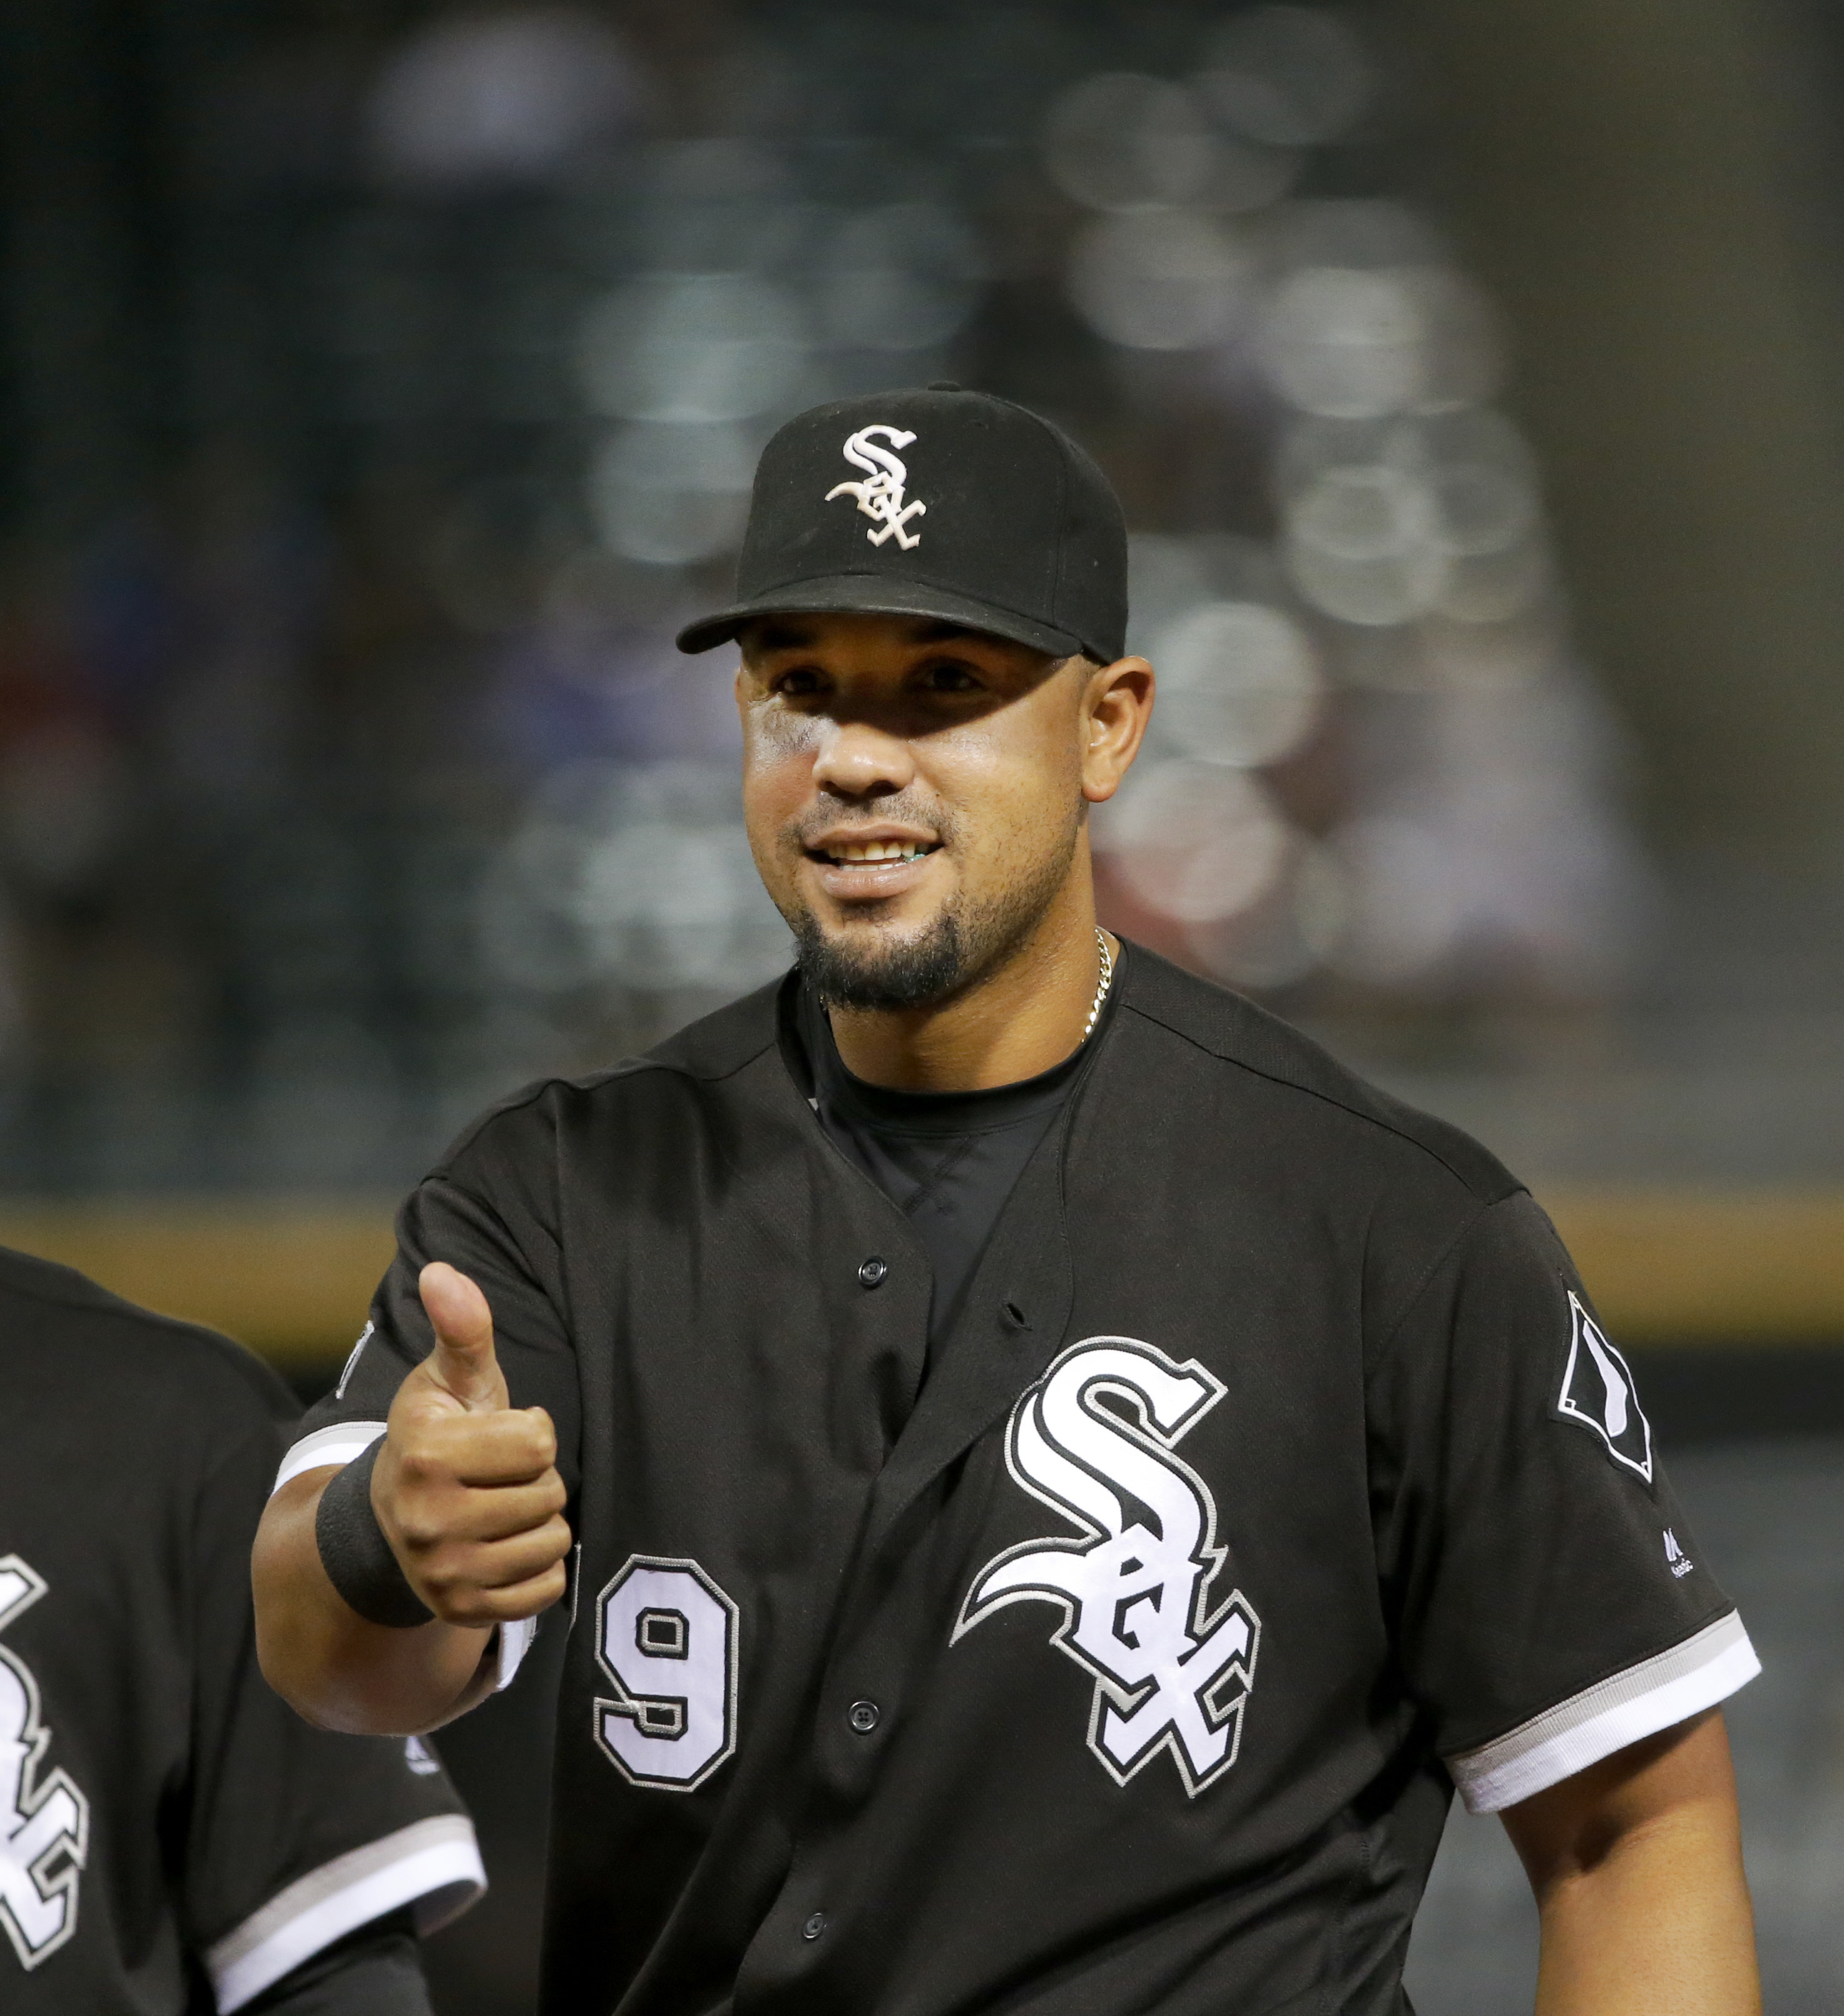 Chicago White Sox's Jose Abreu gives Cleveland Indians' Jason Kipnis the thumbs up after their minor collision at first during the third inning of a baseball game Monday, Sept. 12, 2016, in Chicago. Kipnis was out on the play. (AP Photo/Charles Rex Arboga